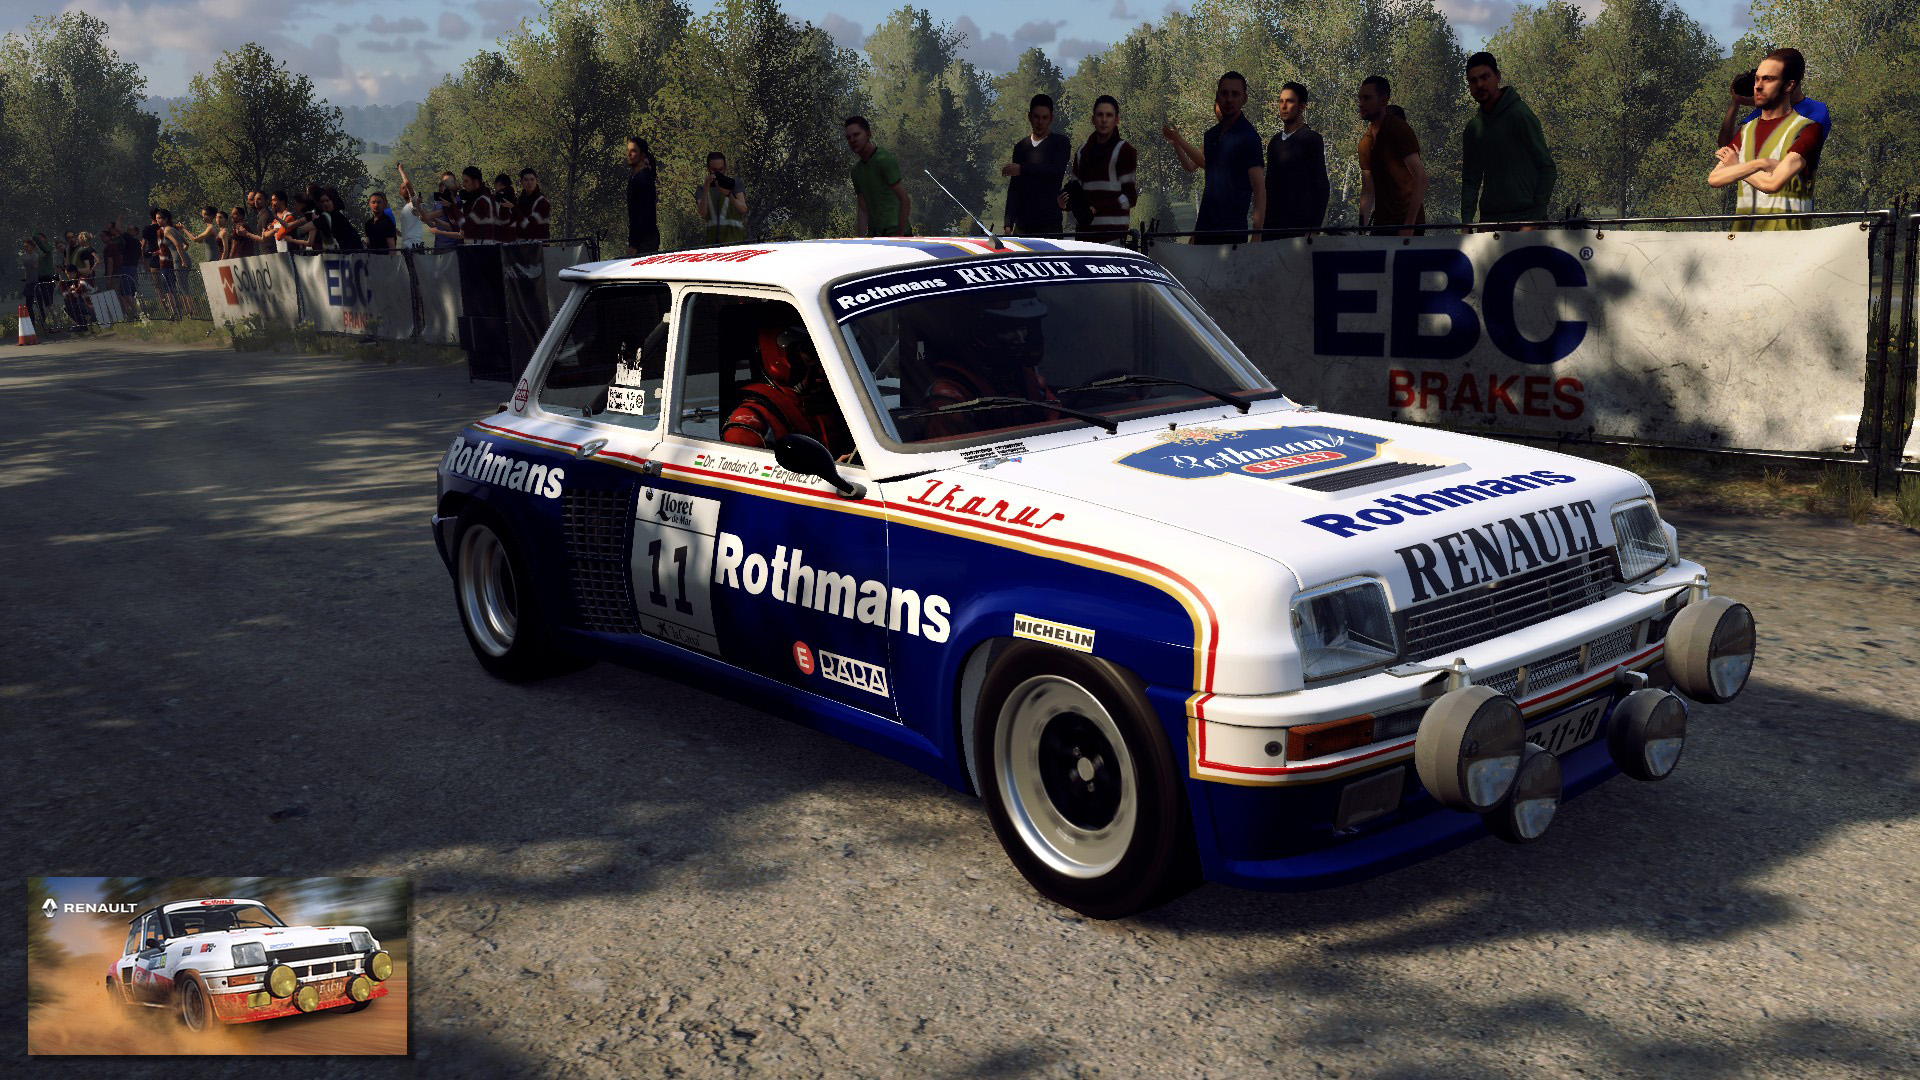 DIRT RALLY 2 0 - CUSTOM LIVERIES, MODS & TOOLS, DISCUSSION